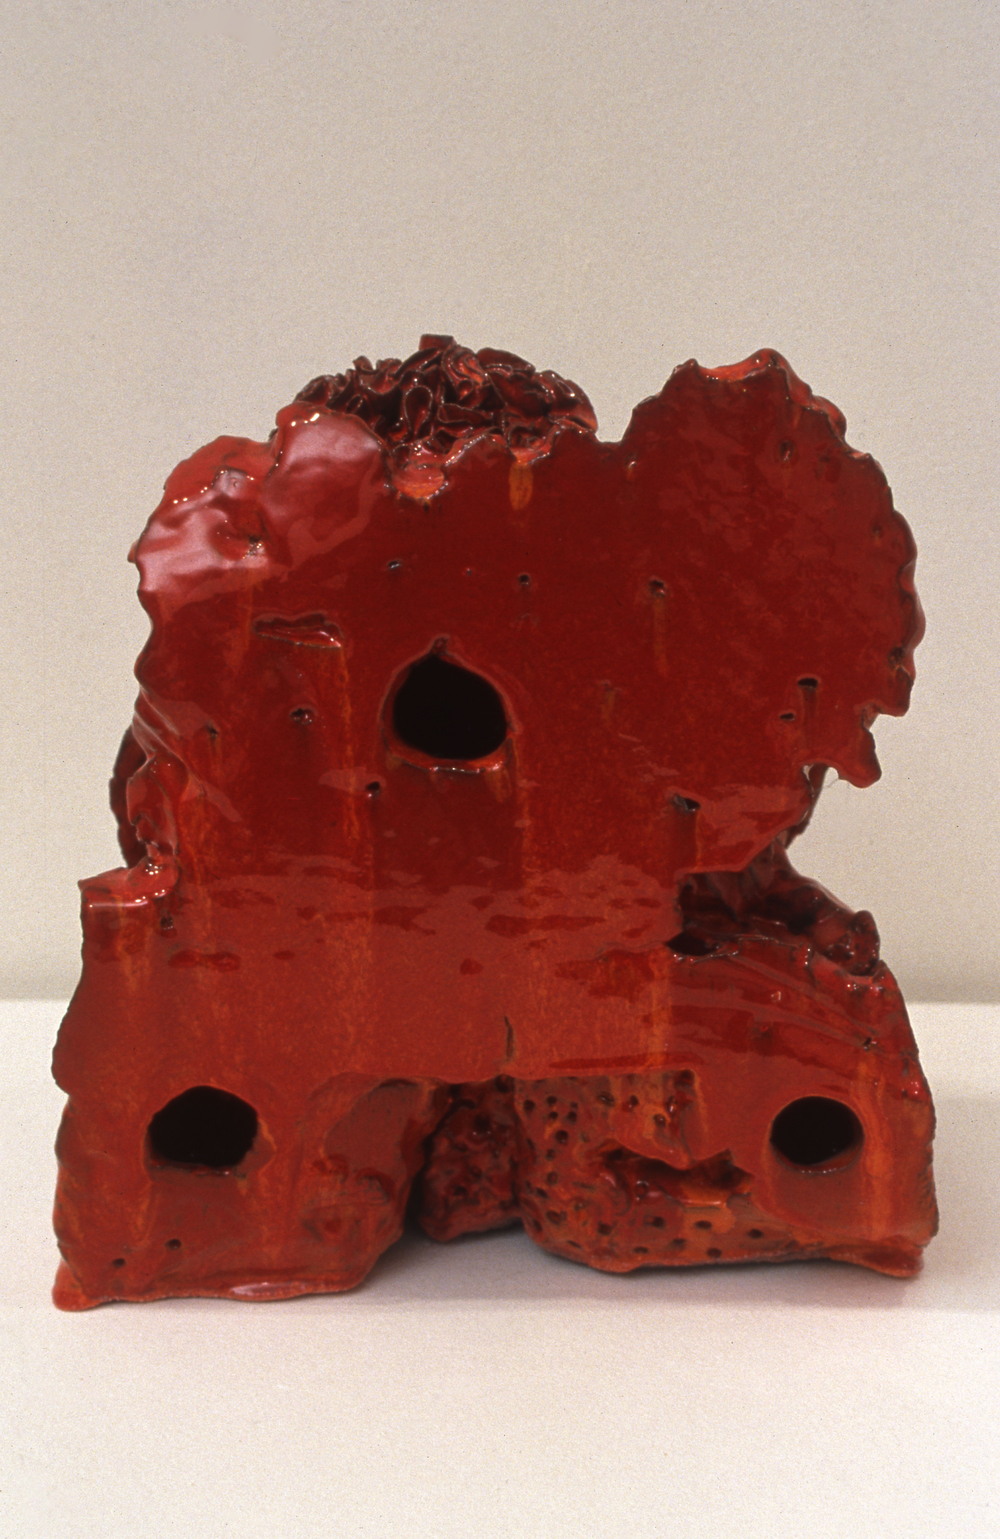 1X Red Fragment Rear.jpg